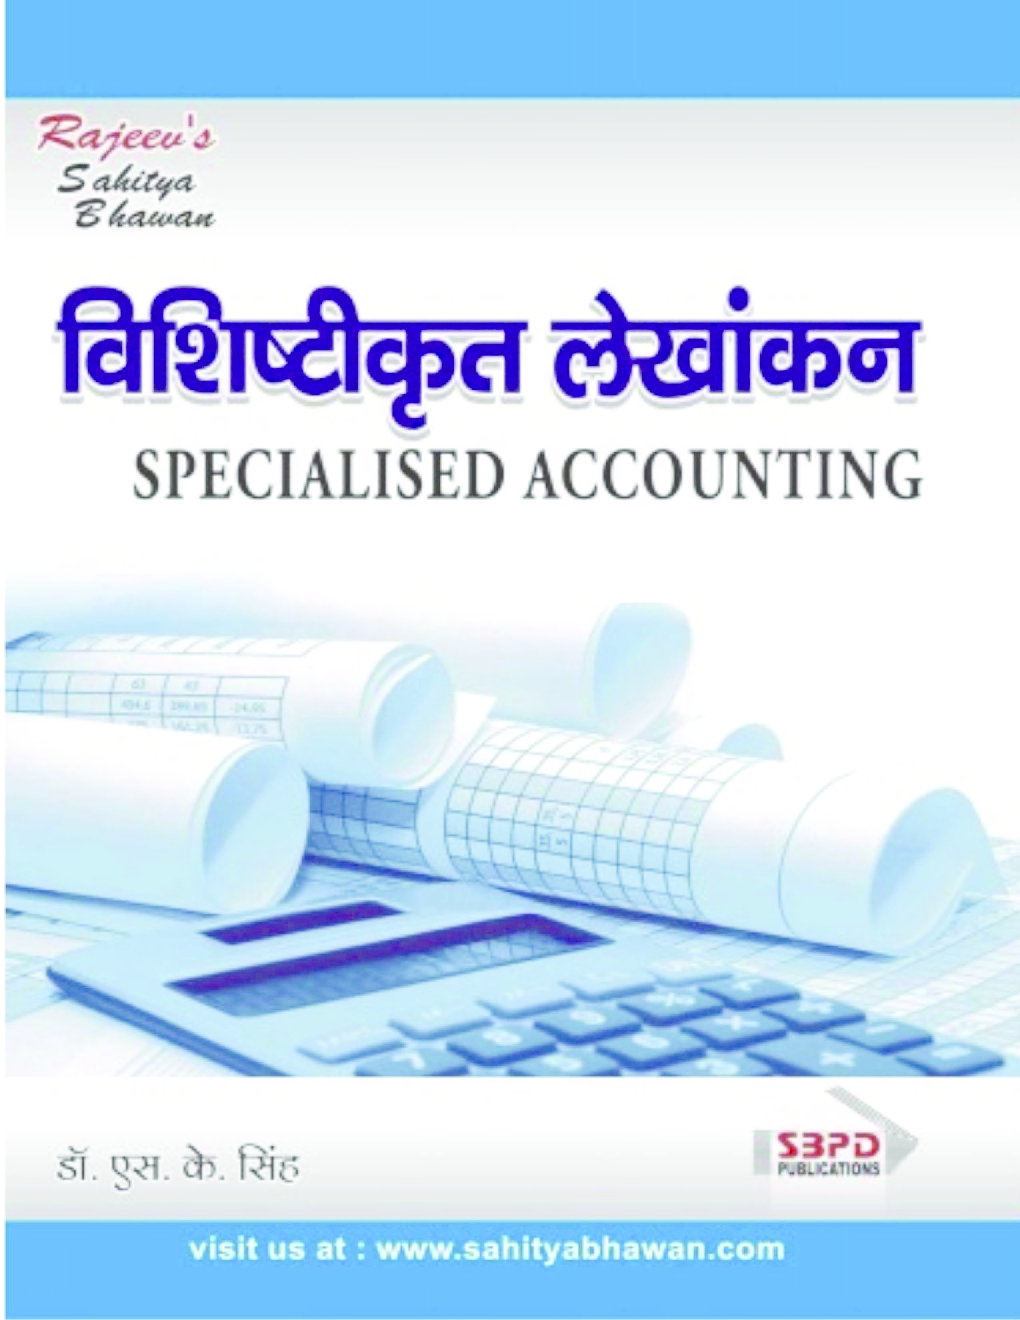 Specialised Accounting Hindi Language - Page 1